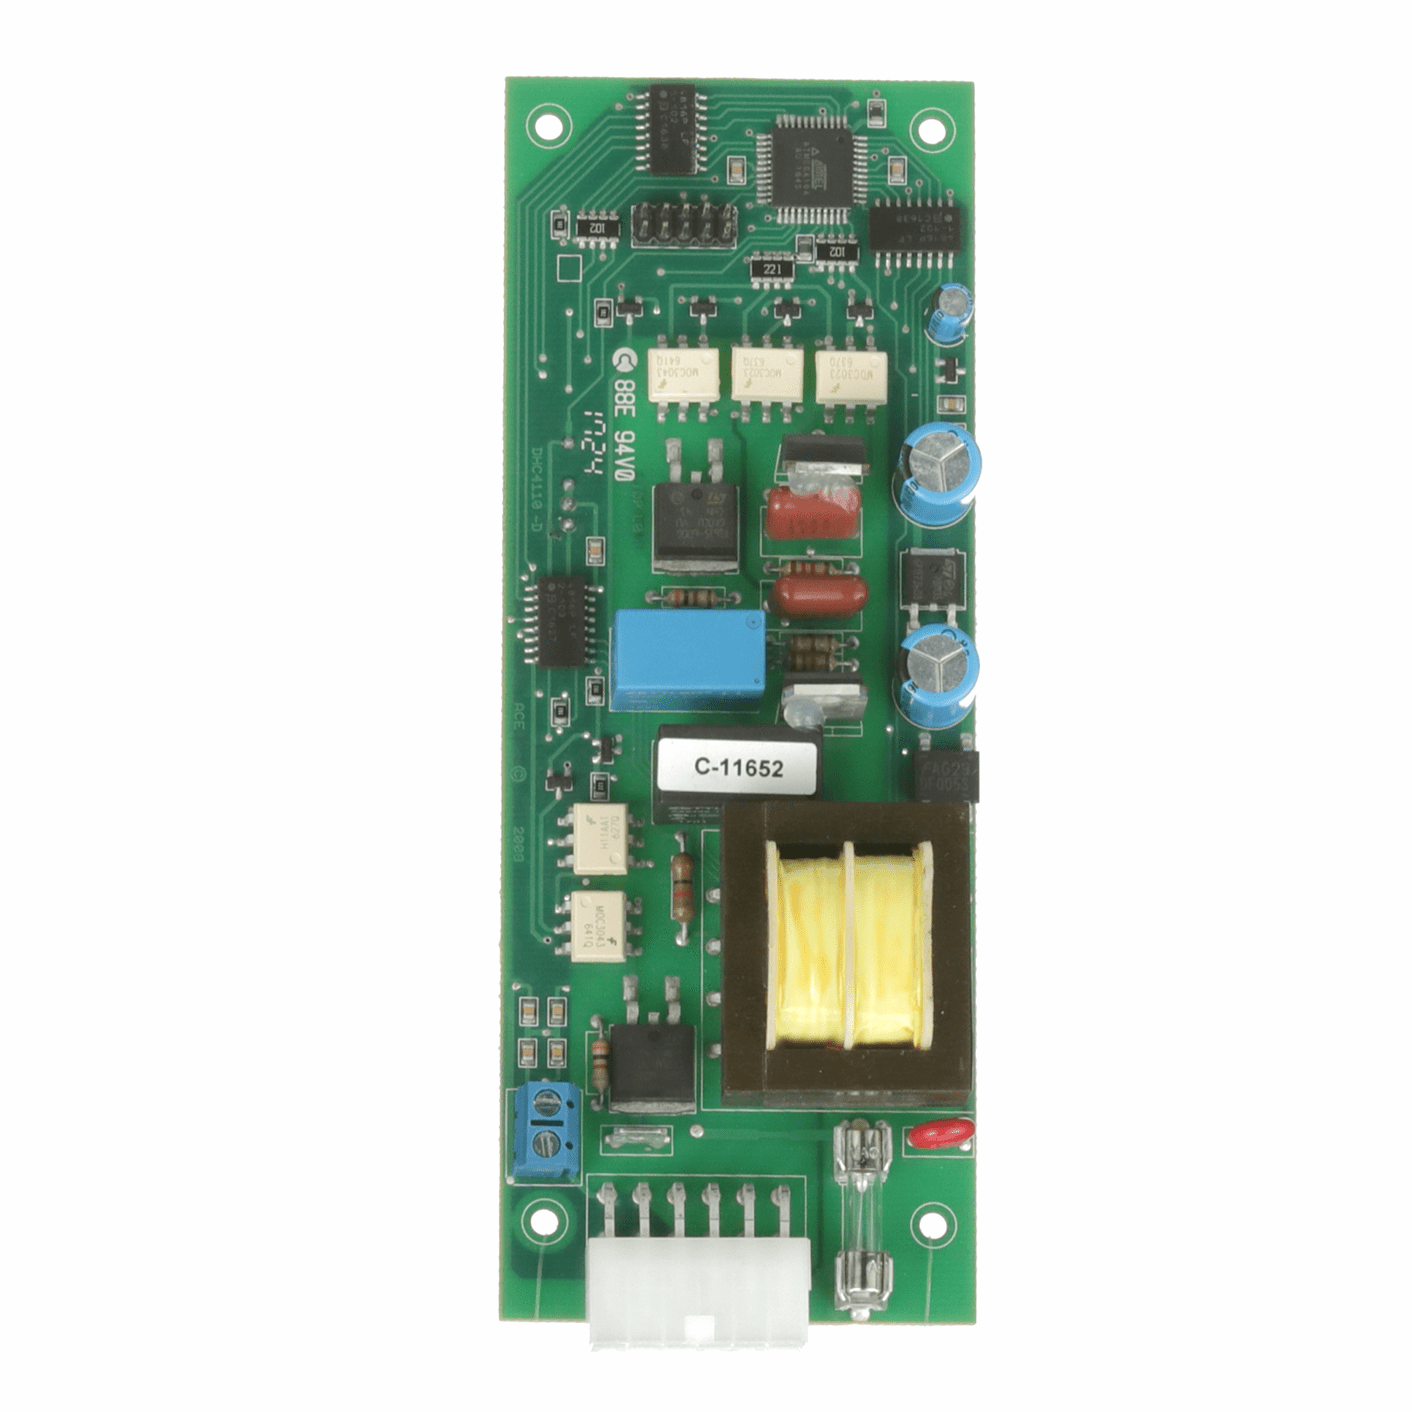 Enviro Control Board | #50-1929 | For Empress FS, Windsor, Meridian, Mini, Maxx | All Hudson River After 2010 | Regency GF40, GF55, GFI55